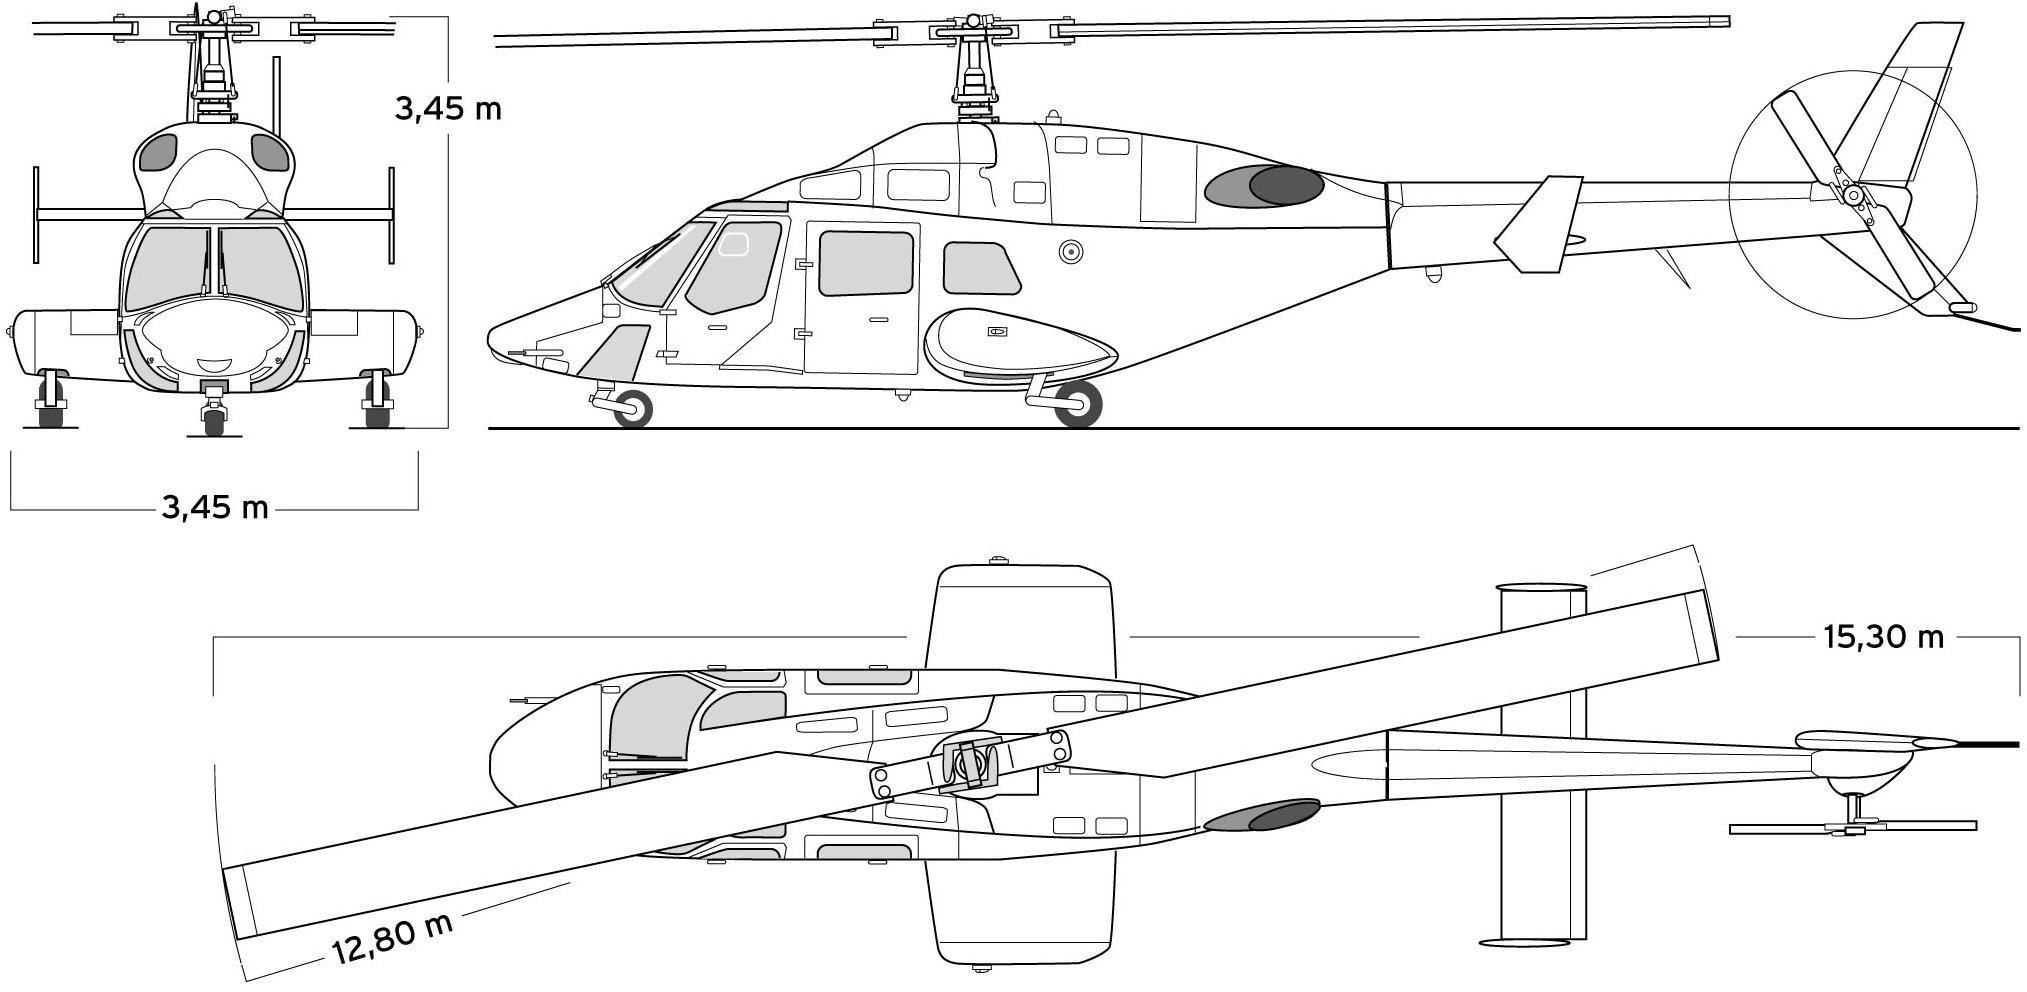 airwolf helicopter blueprints with Bell222b Schematic on Real Airwolf Helicopter FonbEuOjYLDzrZm0y7xmc2IAvjnHtqw 7C8YM7vDW6Plo in addition Bell222B schematic additionally Airwolf Logo 130806296 together with Watch further Blue Thunder Helicopter.